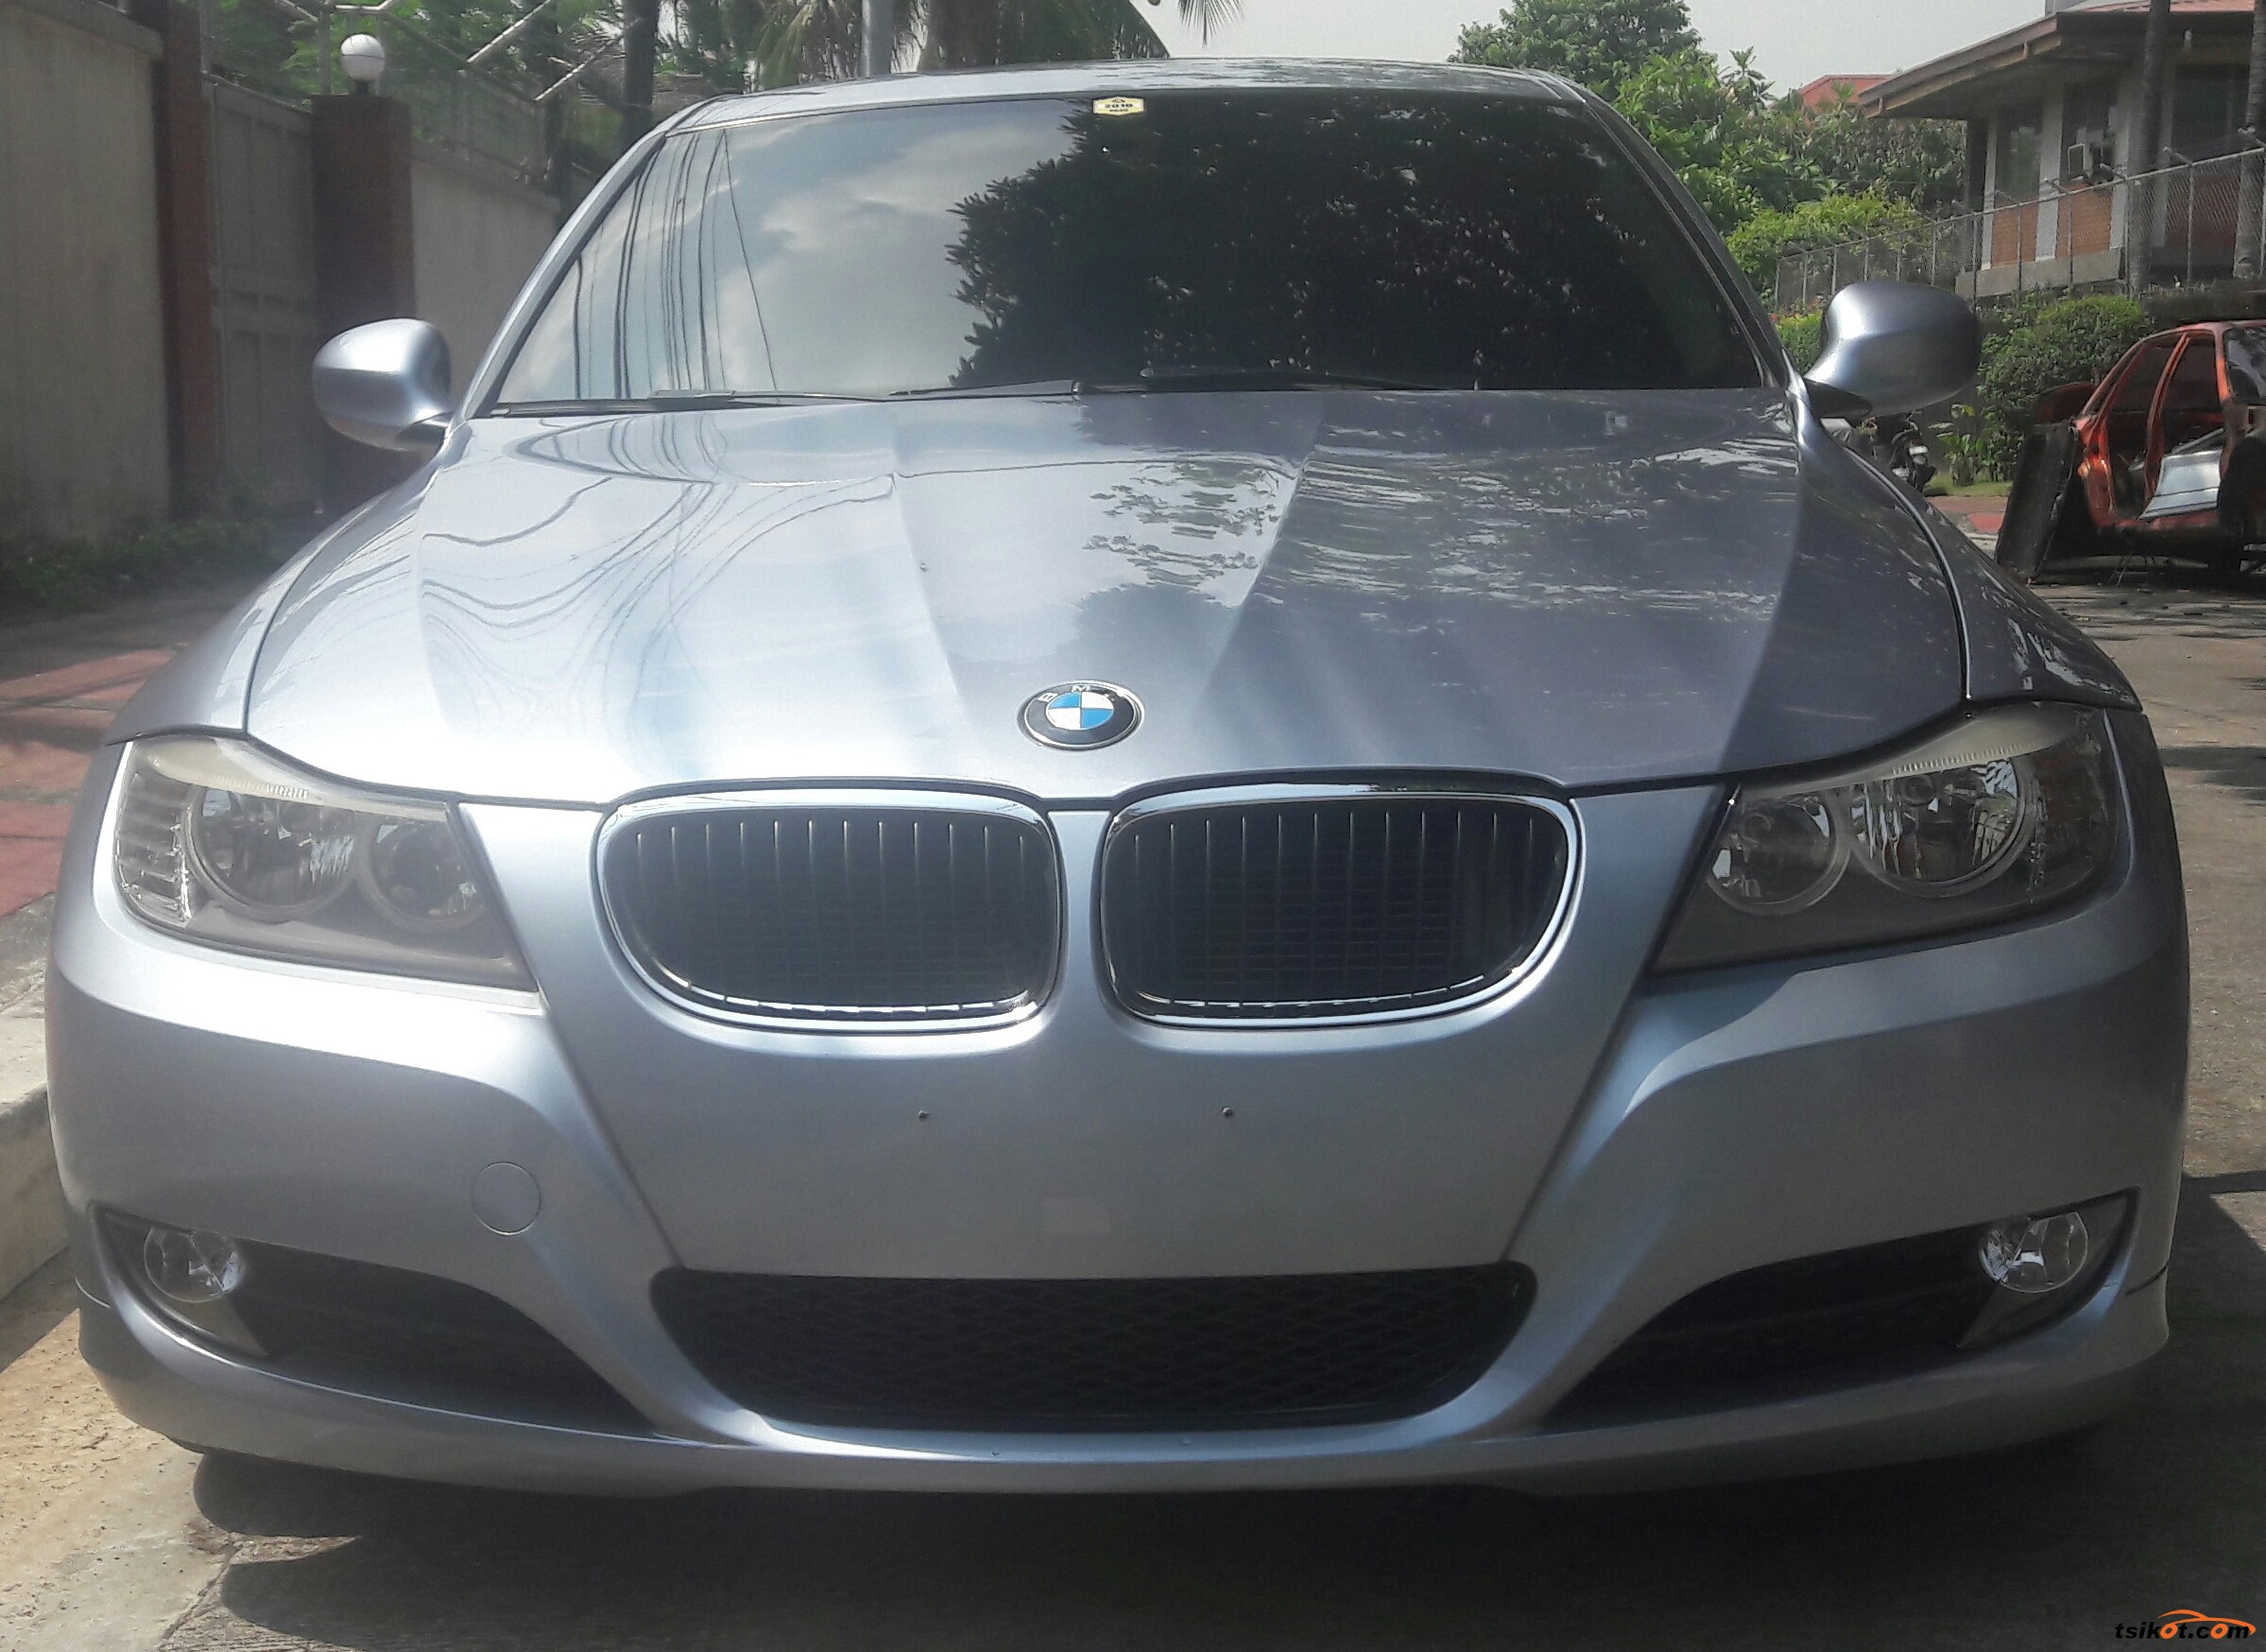 bmw 320d 2011 car for sale metro manila philippines. Black Bedroom Furniture Sets. Home Design Ideas